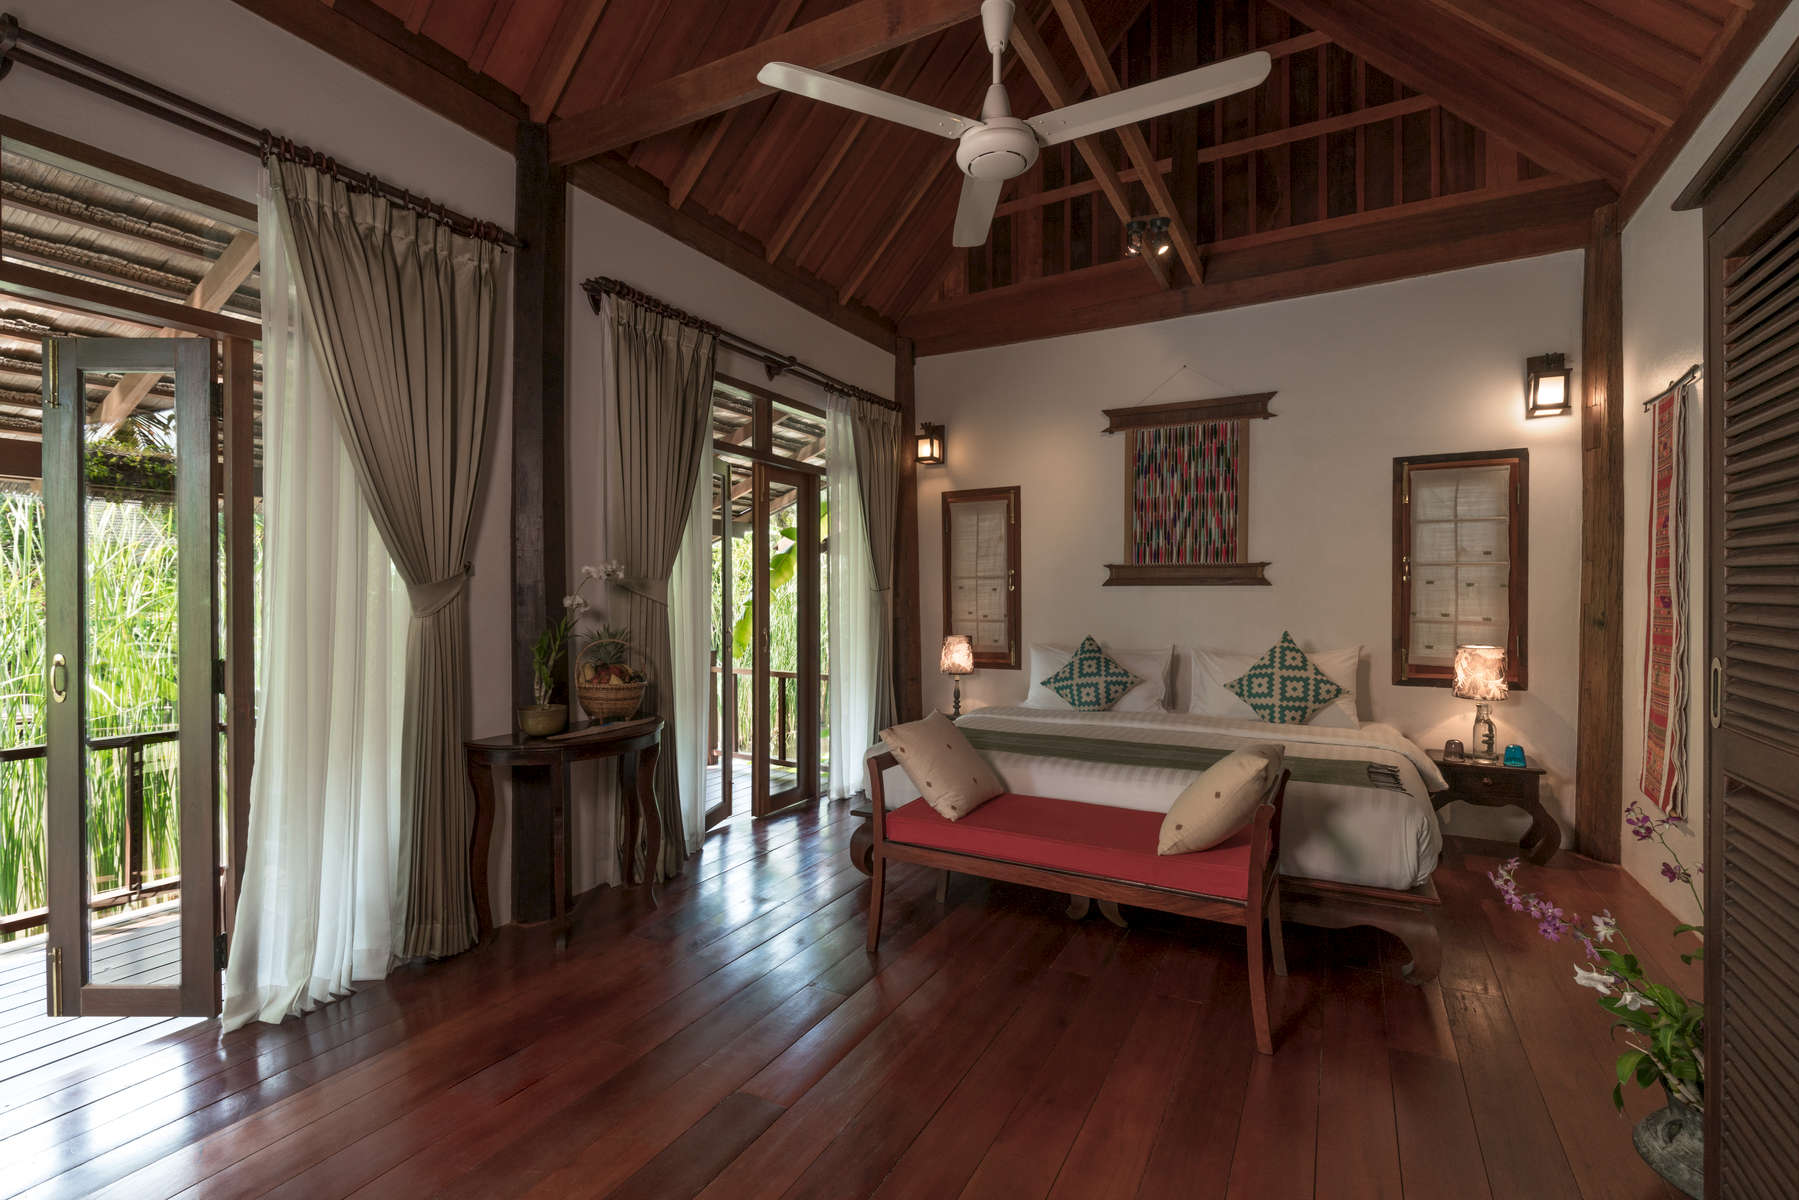 Maison_DaLaBua_Hotel_Luang_Prabang_Laos_Photo-by-Cyril-Eberle-DSC08929